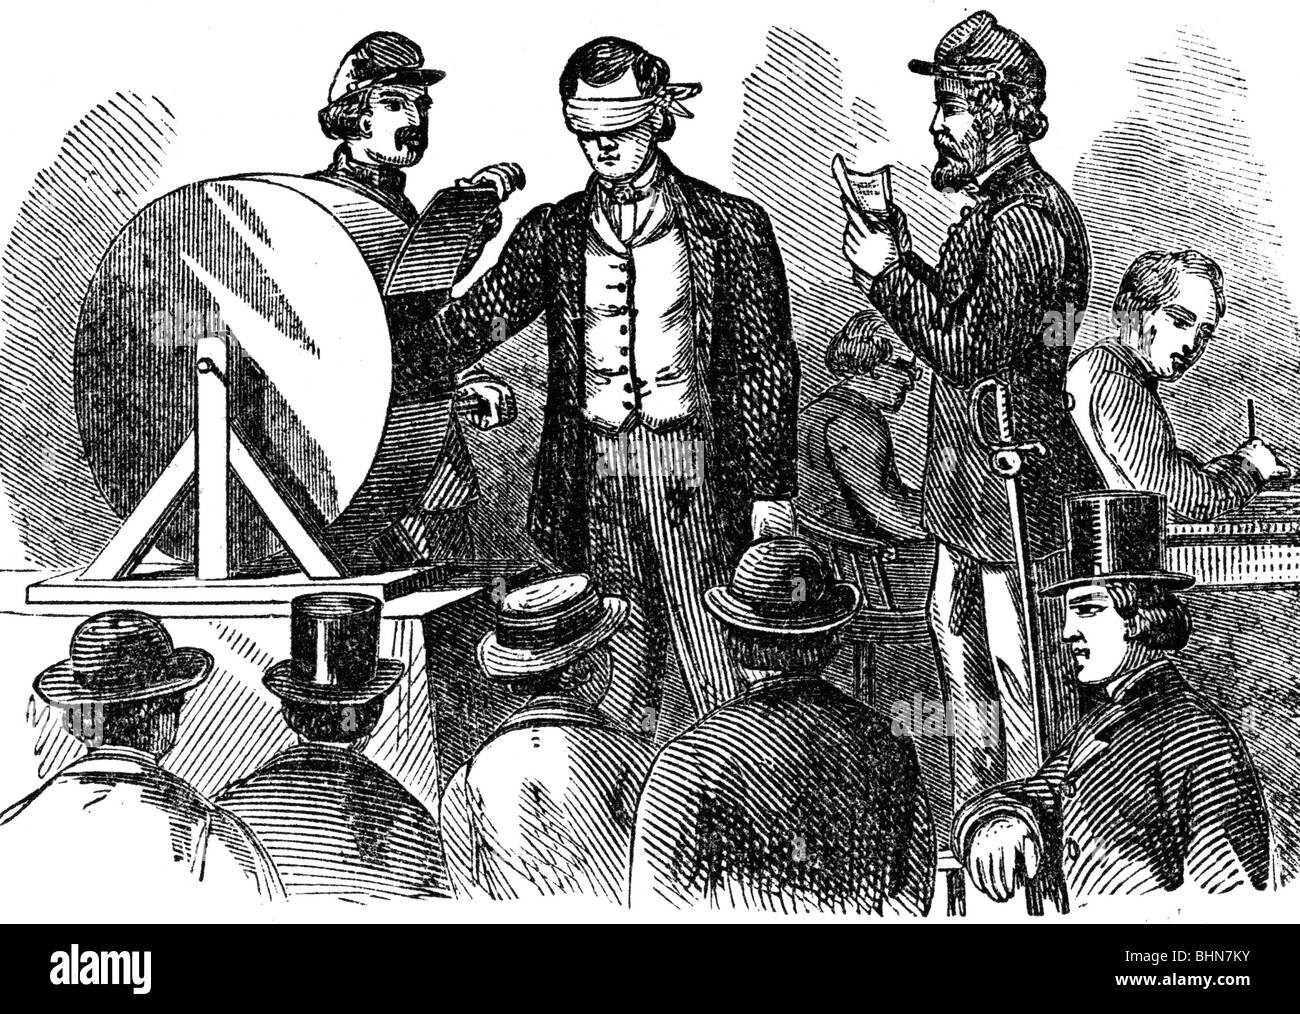 the us civil war 1861 1865 essay An essay by  the american civil war, especially in border slave states like  missouri,  in 1861 and 1862, border state citizens like bingham witnessed the   civil war on the western border: the missouri-kansas conflict, 1854-1865.